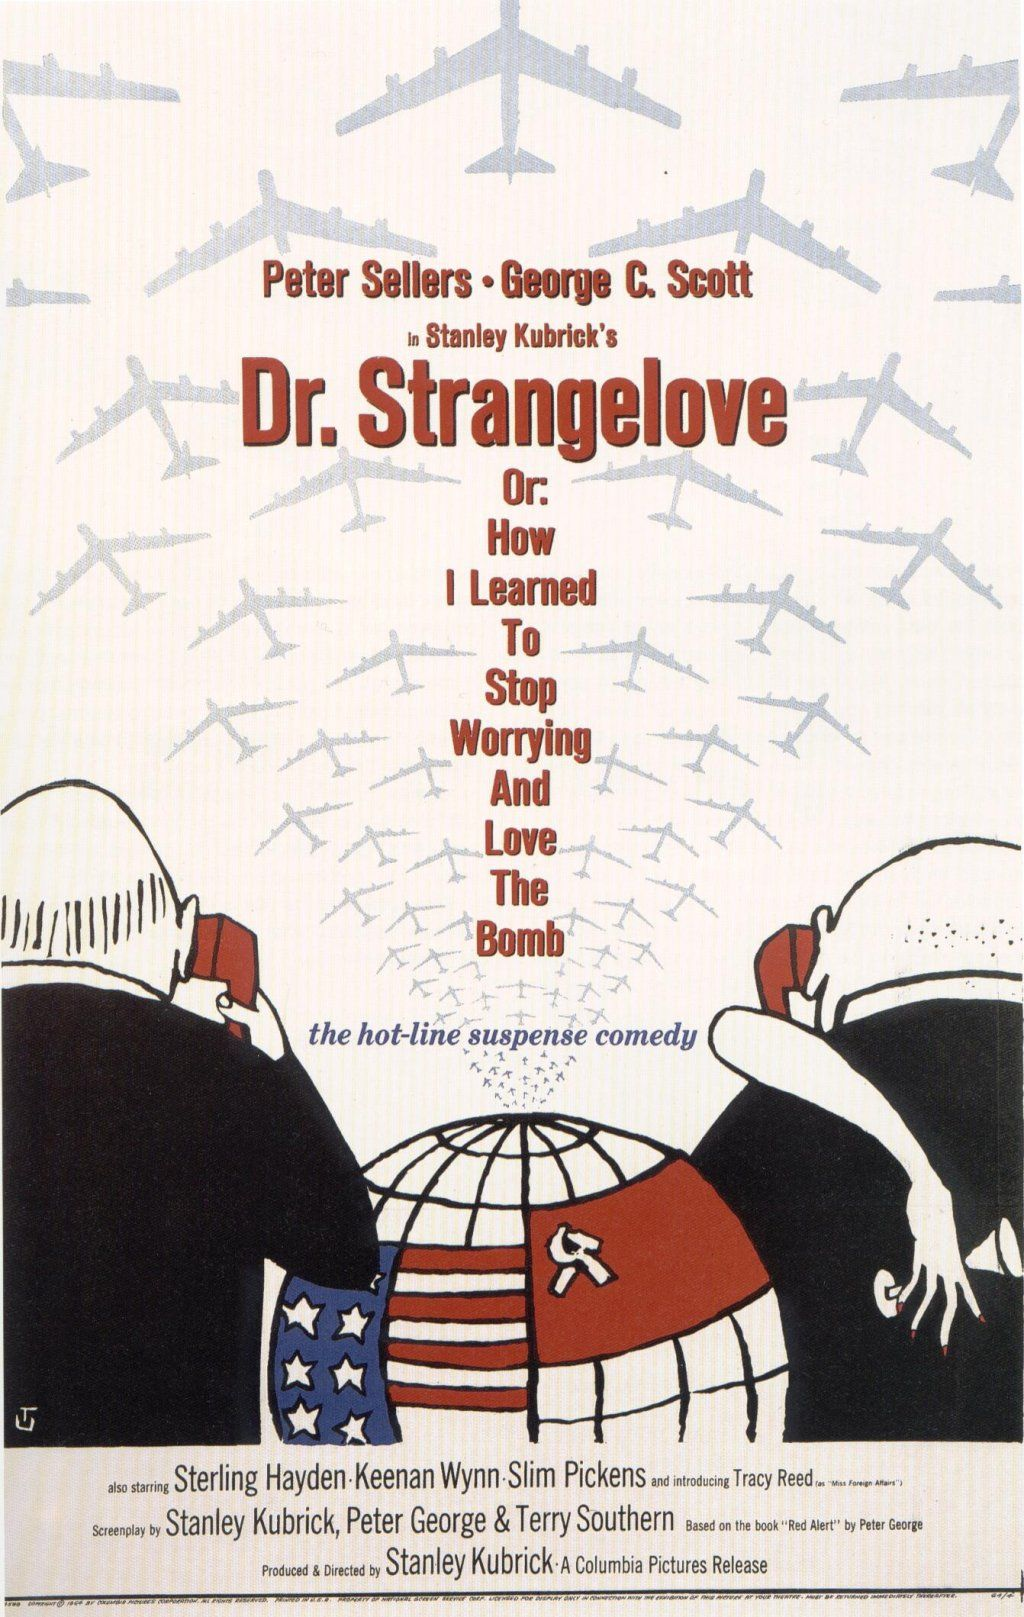 Dr. Strangelove (or How I Learned To Stop Worrying And Love The Bomb)